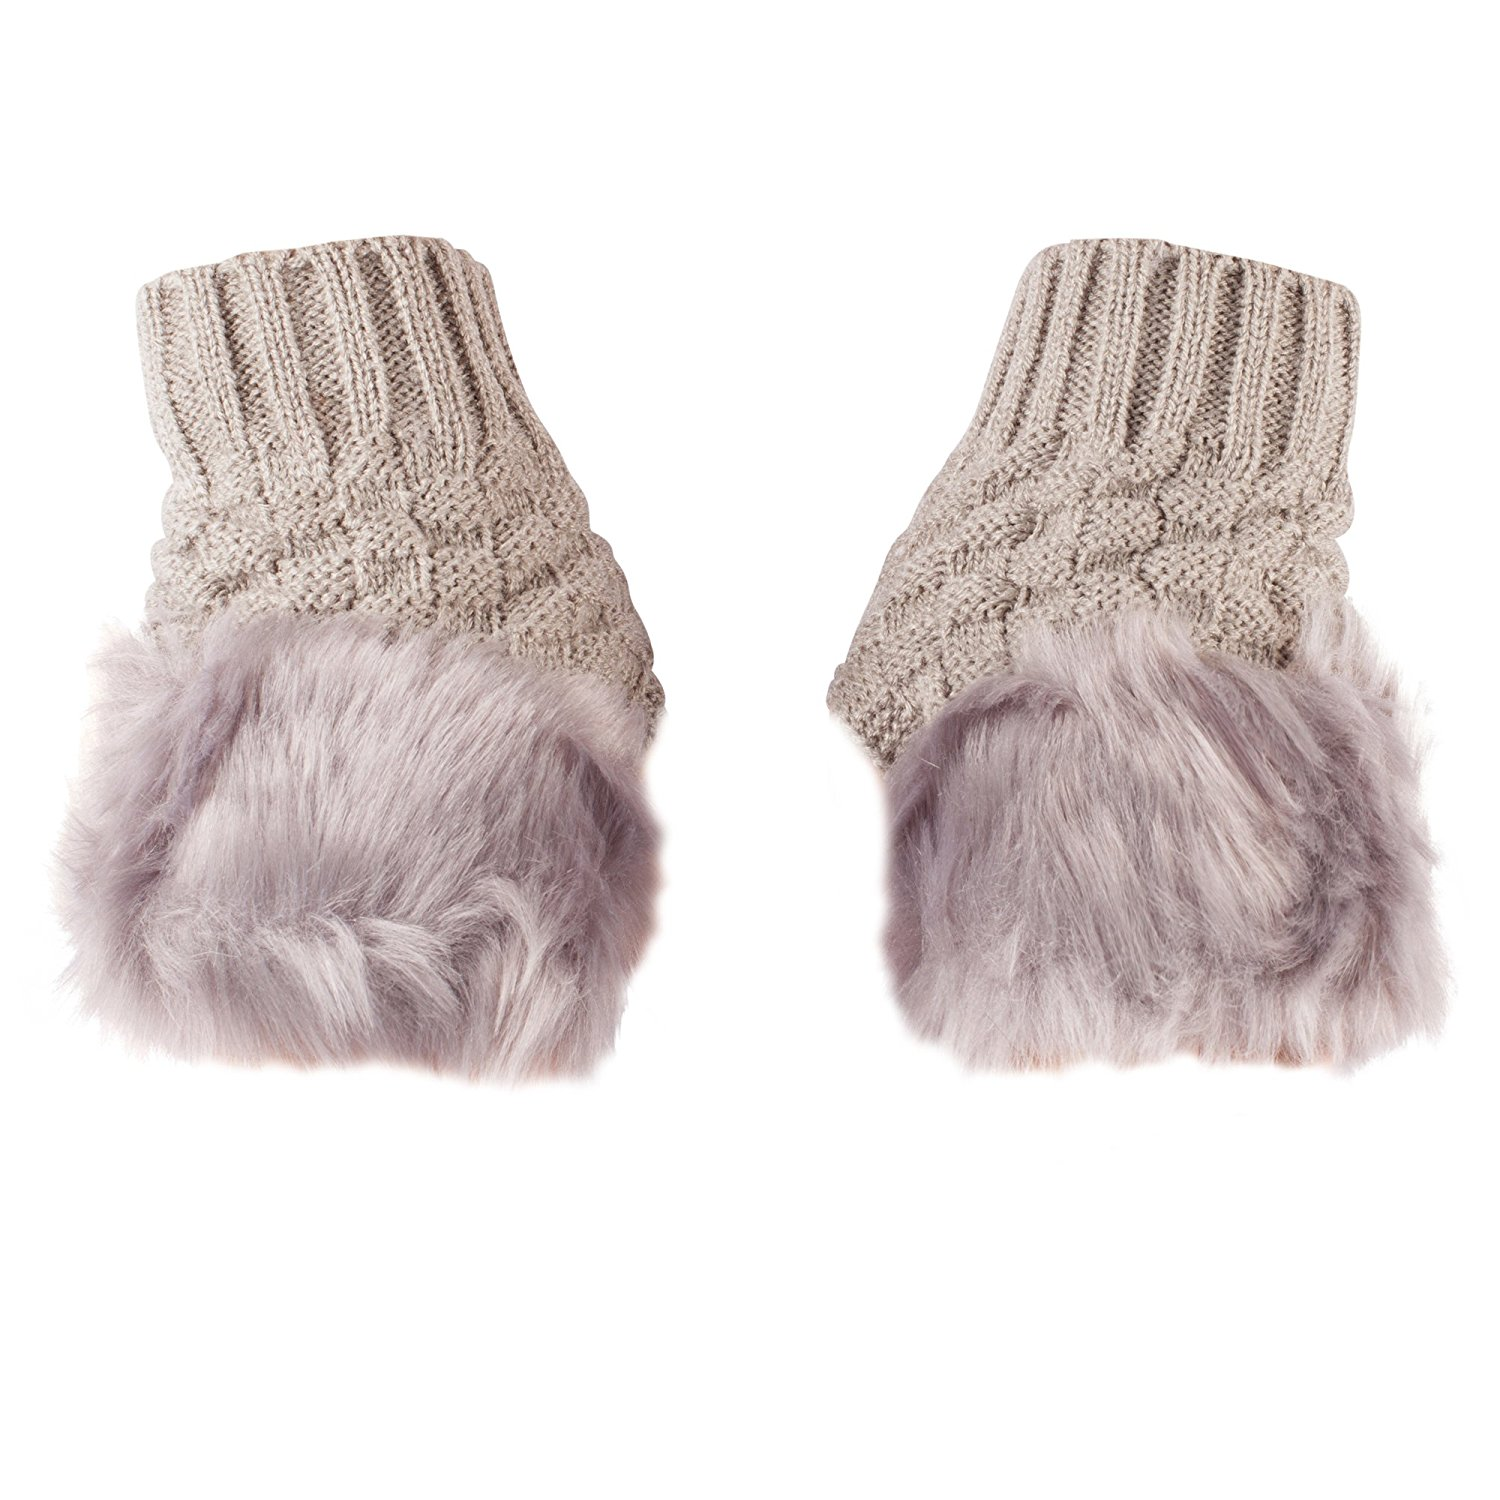 89b878c77ec Get Quotations · Warm Knitted Winter Fingerless Gloves with Faux Fur Trim  in Various Colours